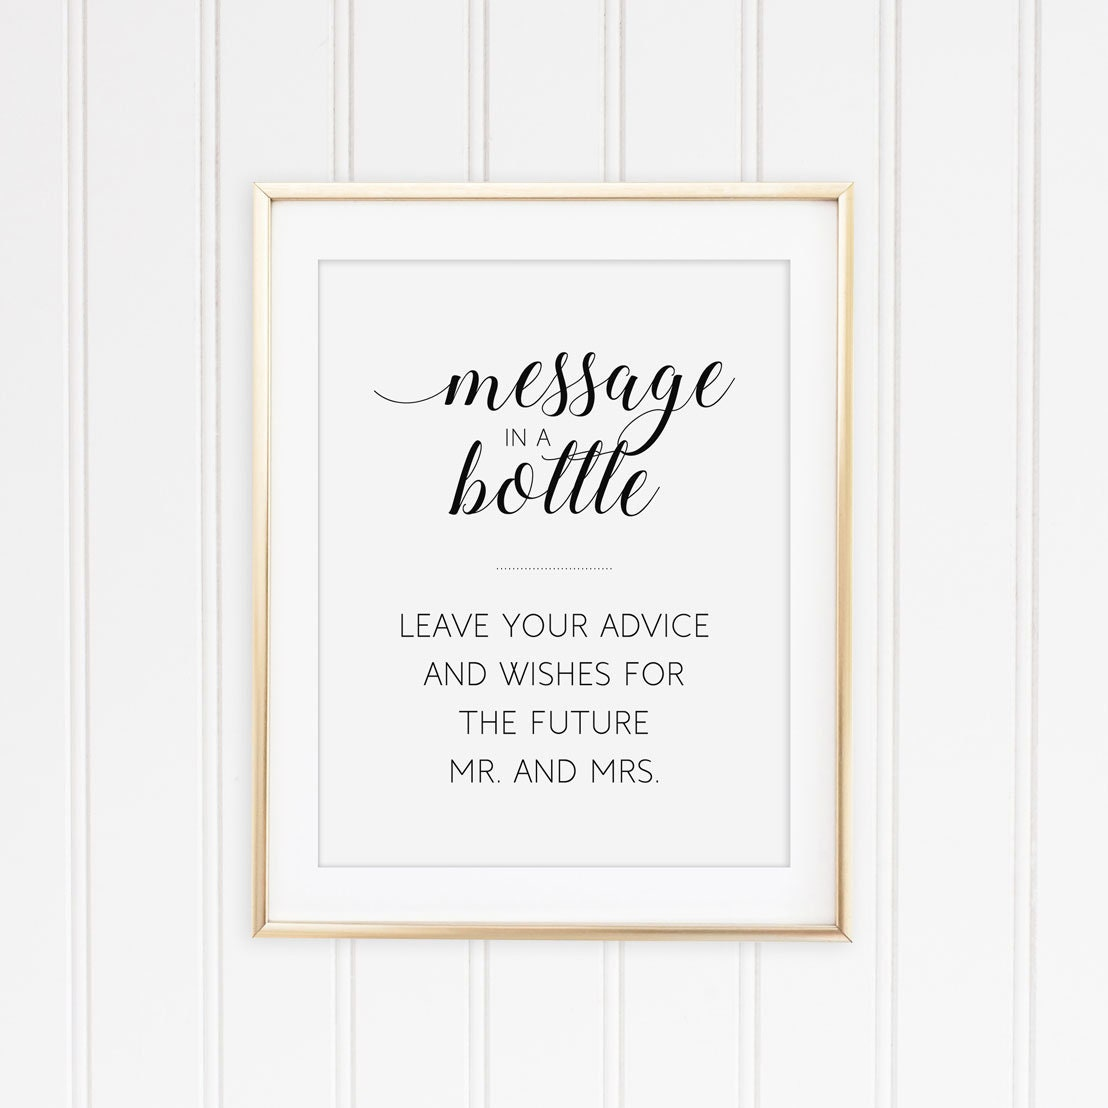 Message in a bottle, Guest book sign, Wedding shower, Wine bottle guest  book, Advice for bride and groom, Couples shower